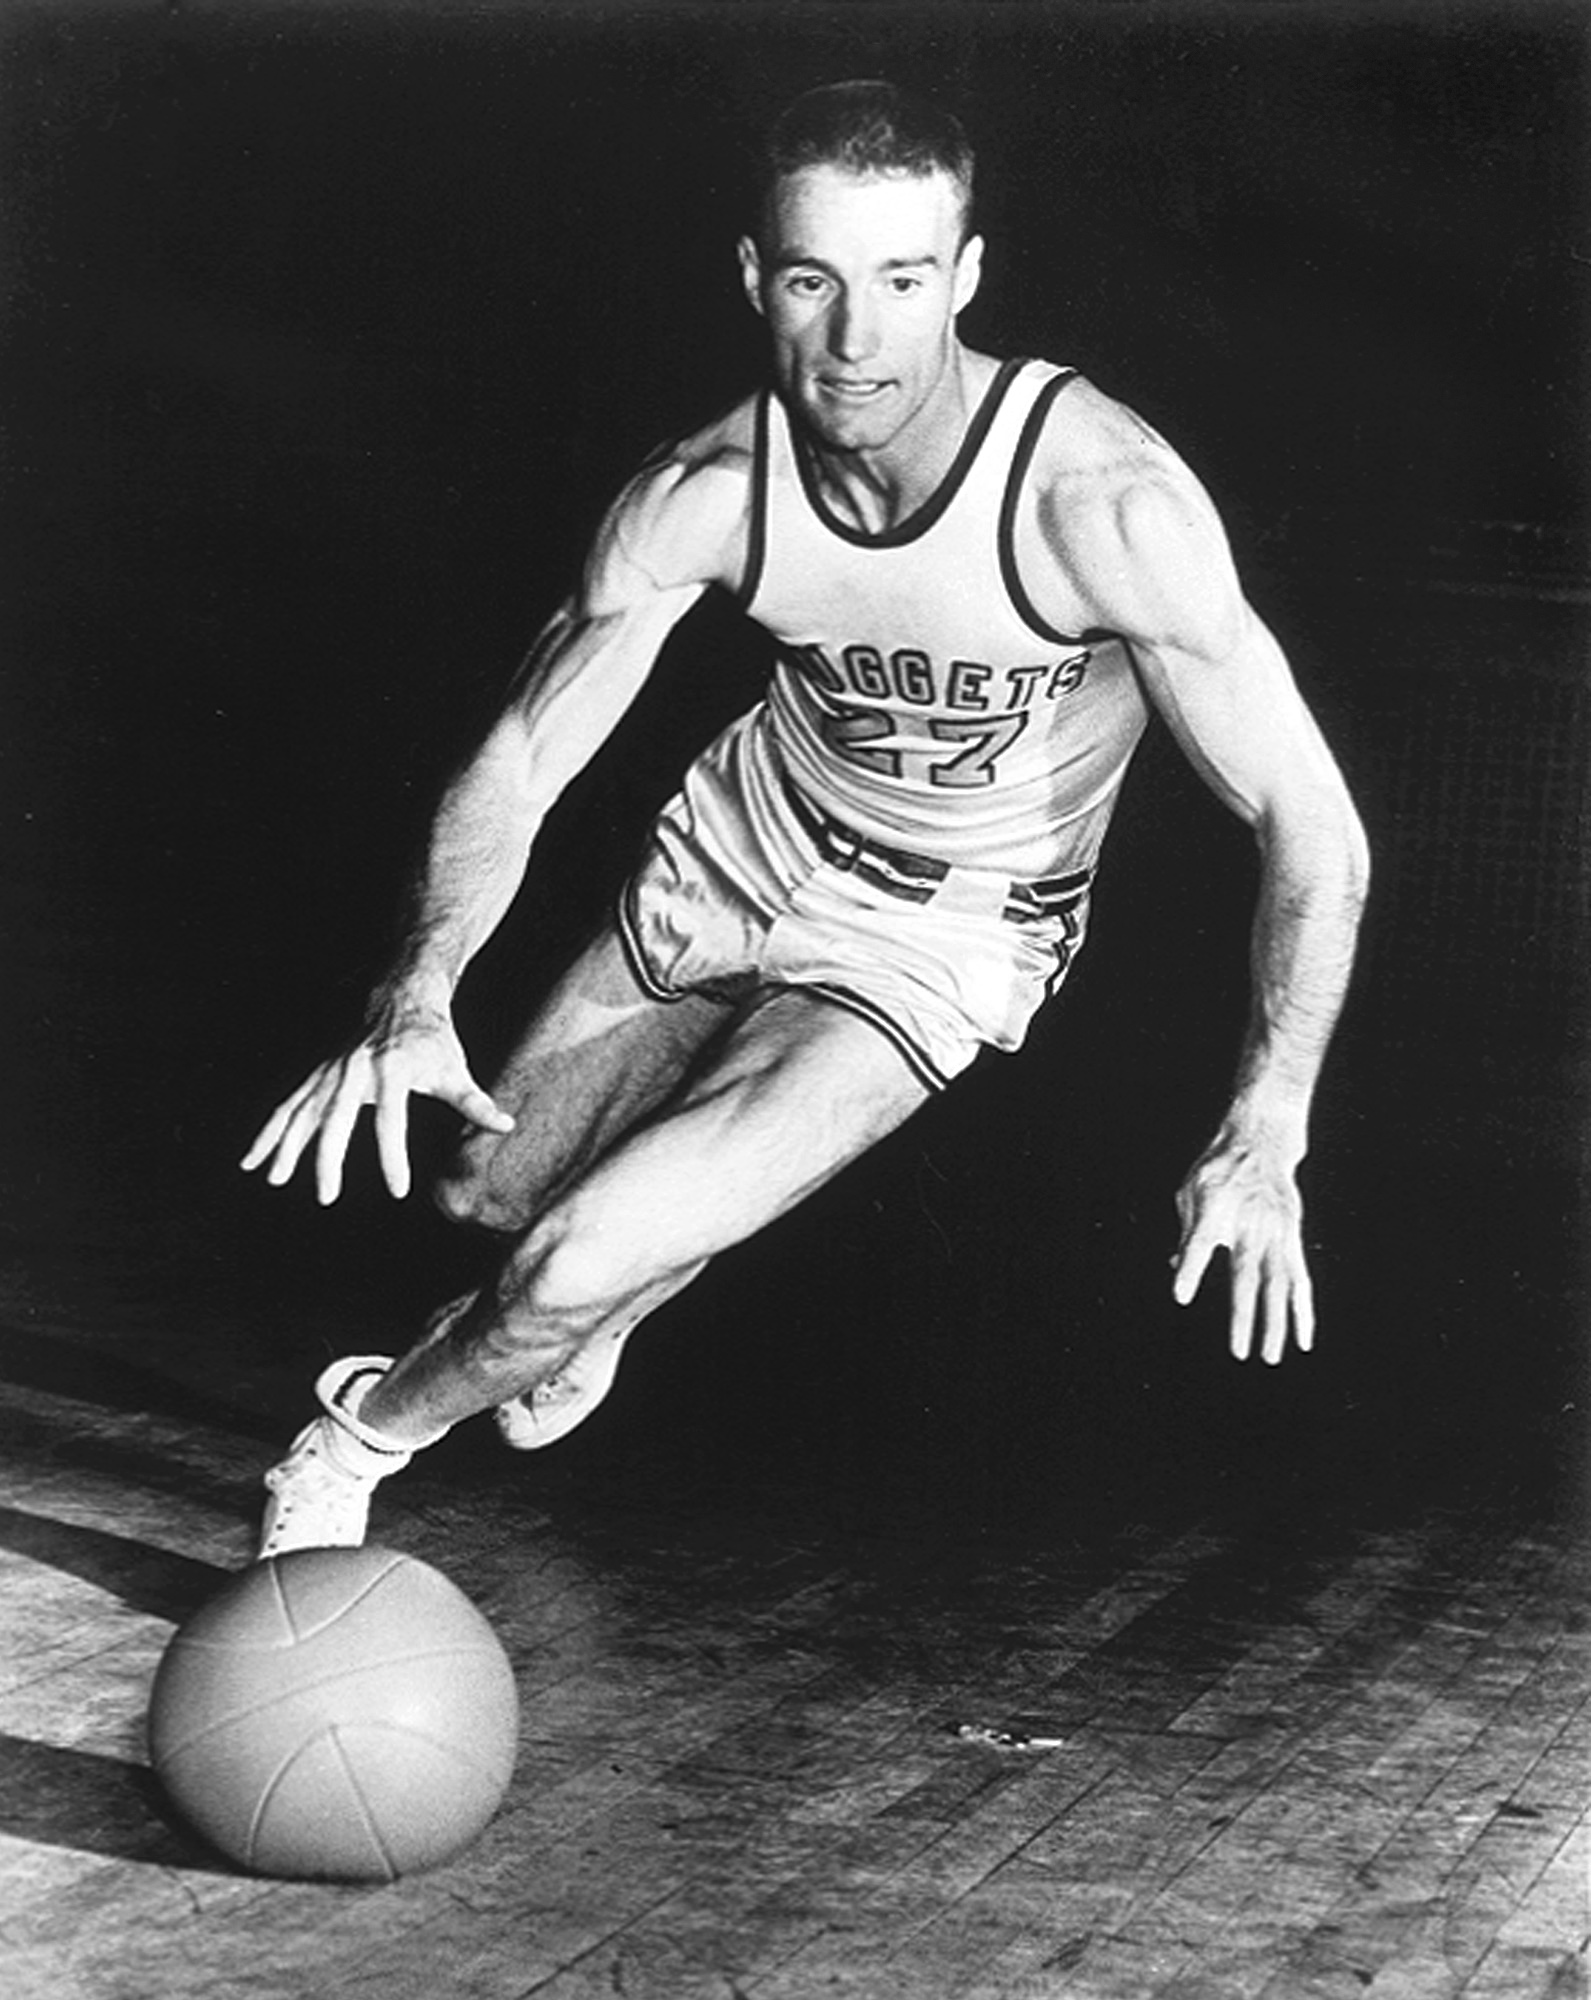 FILE - In this 1950 file photo, the Denver Nuggets' Kenny Sailors dribbles a basketball.  Sailors, a College basketball Hall of Famer and the man credited by some with being the first to use the modern jump shot, died in his sleep early Saturday, Jan. 30,